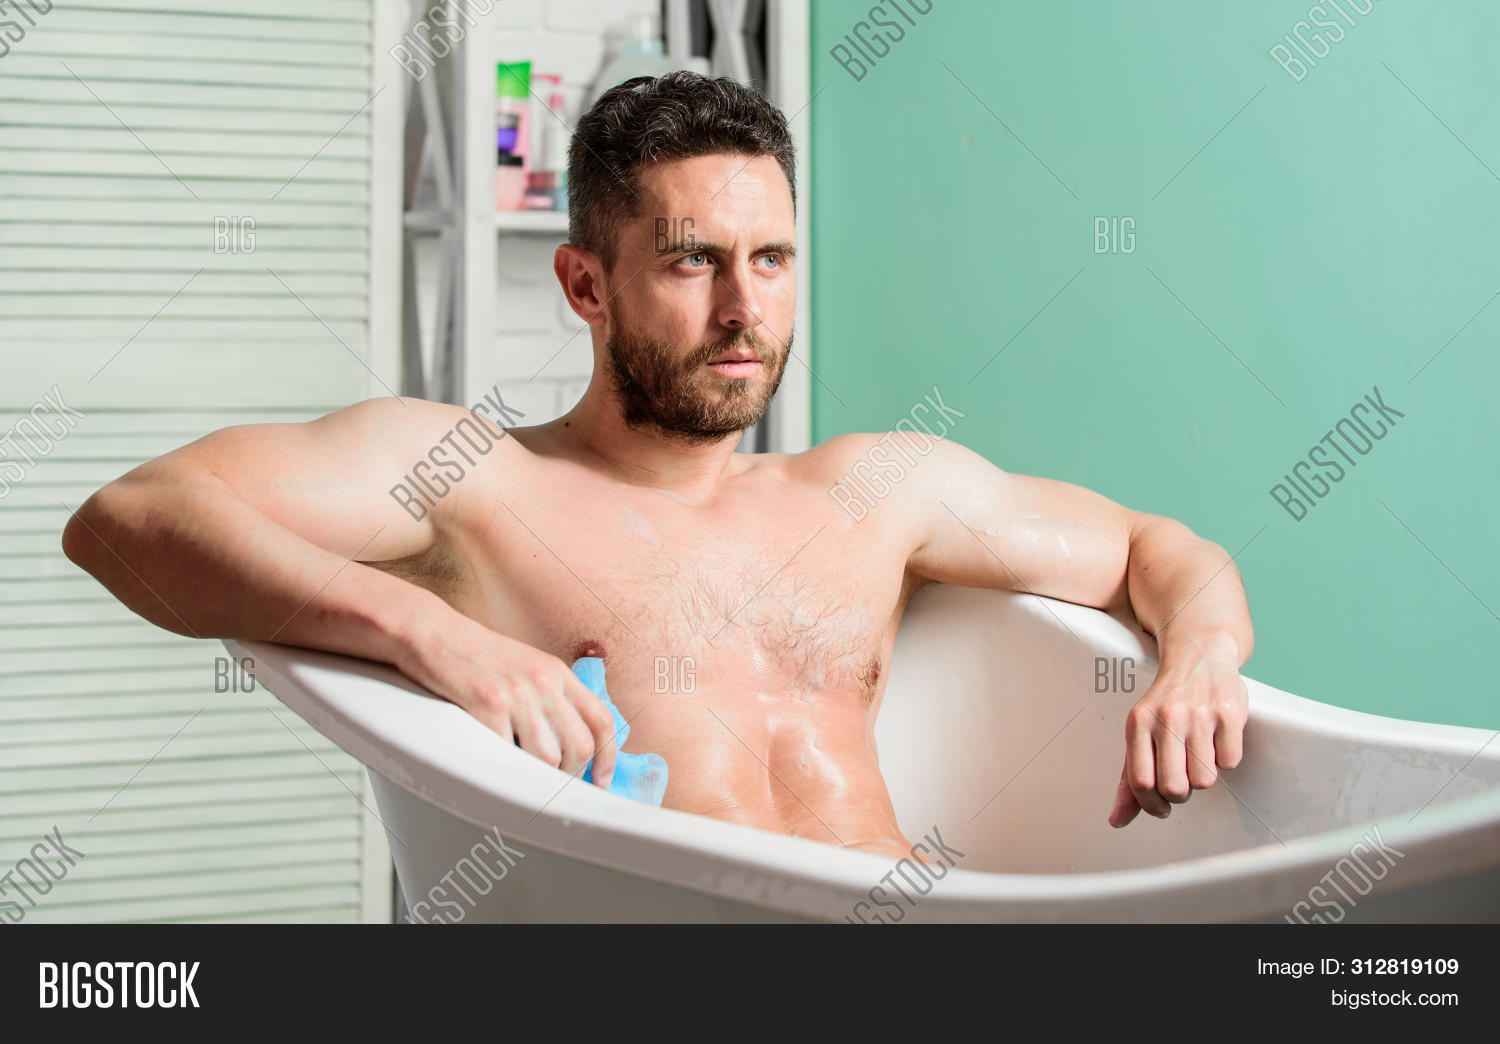 adult,athletic,bathing,bathroom,bathtub,body,can,care,caucasian,clean,cleaning,concept,confident,enjoy,enjoyment,handsome,health,heart,hygiene,hygienic,improve,lotion,macho,man,masculine,muscular,naked,parts,peeling,personal,pleasure,procedure,relaxation,relaxing,sexy,sit,skin,take,torso,total